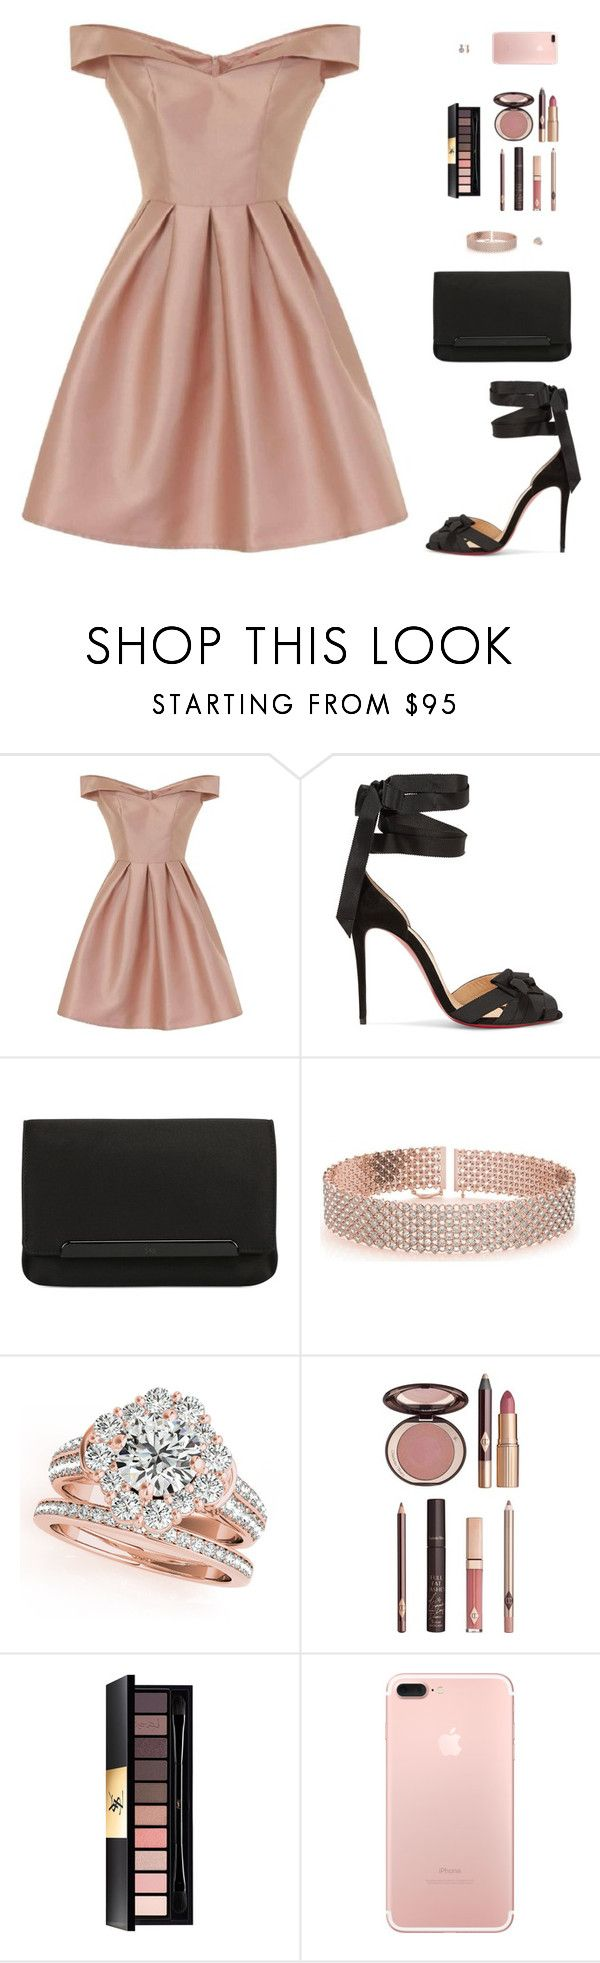 """""""Sin título #4666"""" by mdmsb on Polyvore featuring moda, Chi Chi, Christian Louboutin, Allurez, Charlotte Tilbury y Yves Saint Laurent"""